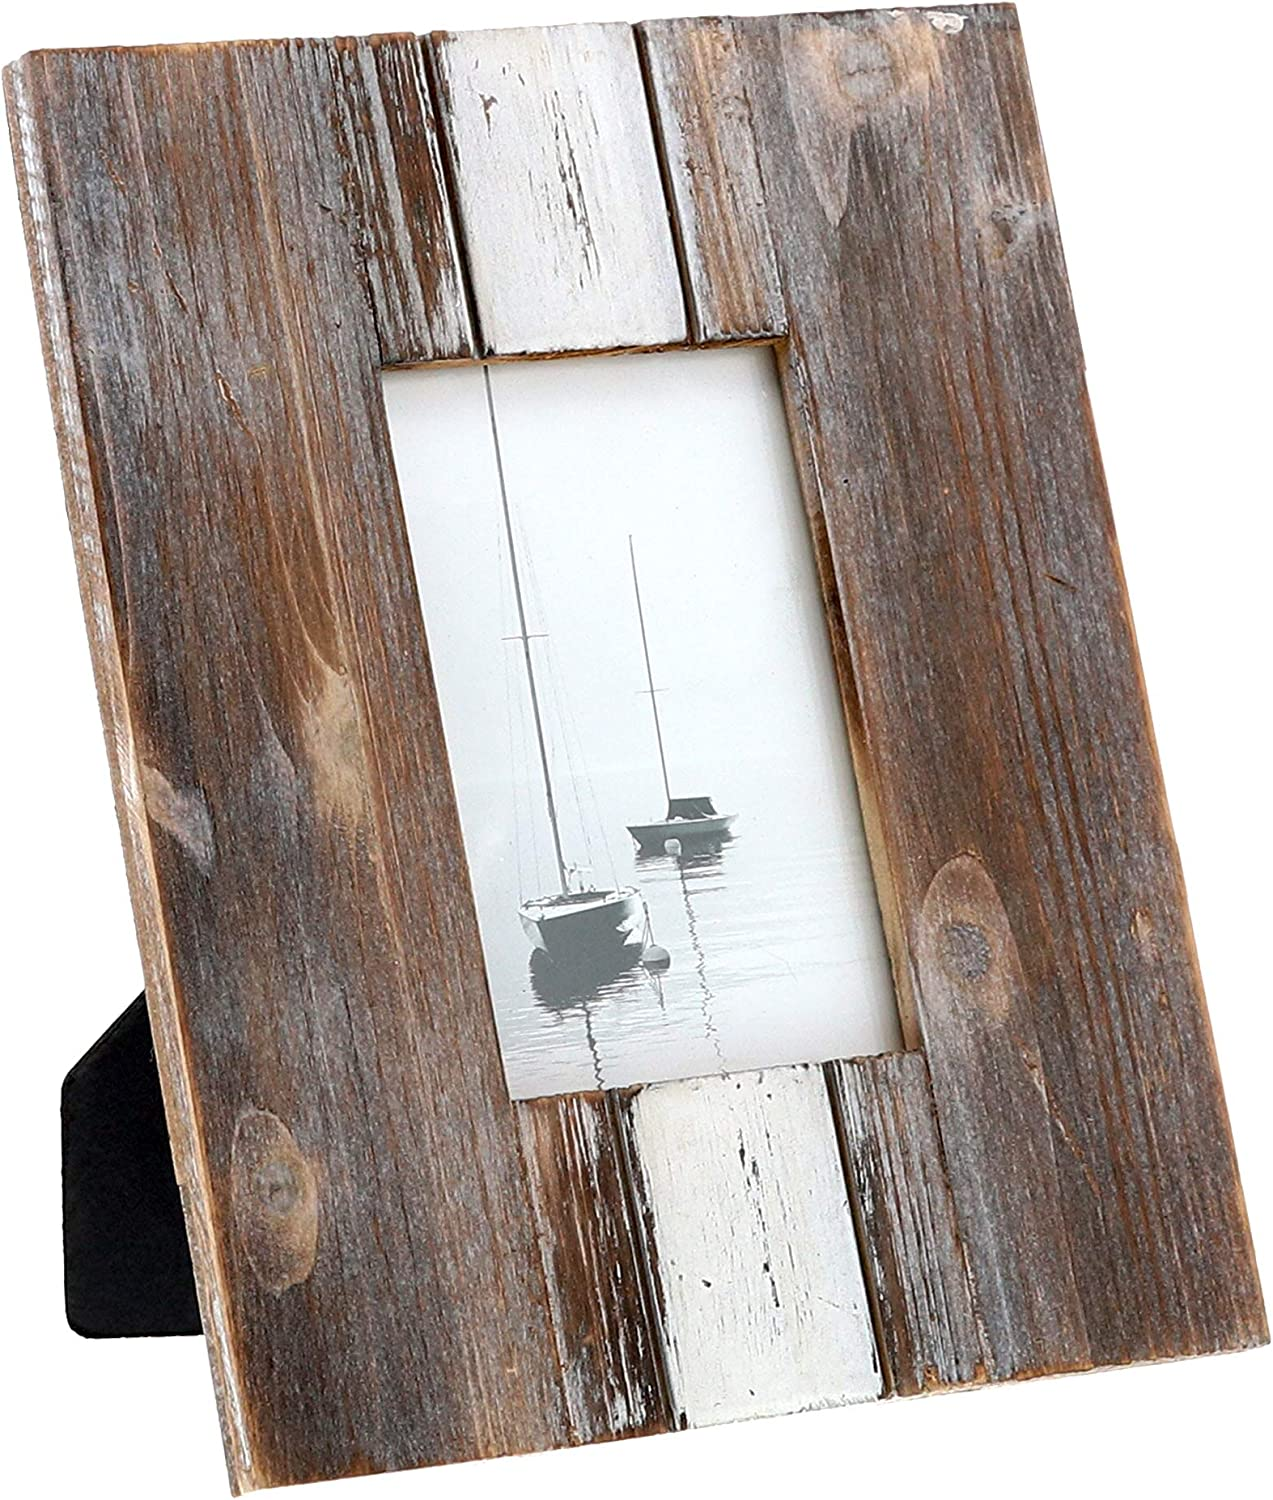 Barnyard Designs Rustic Farmhouse Distressed Picture Frame - Unf